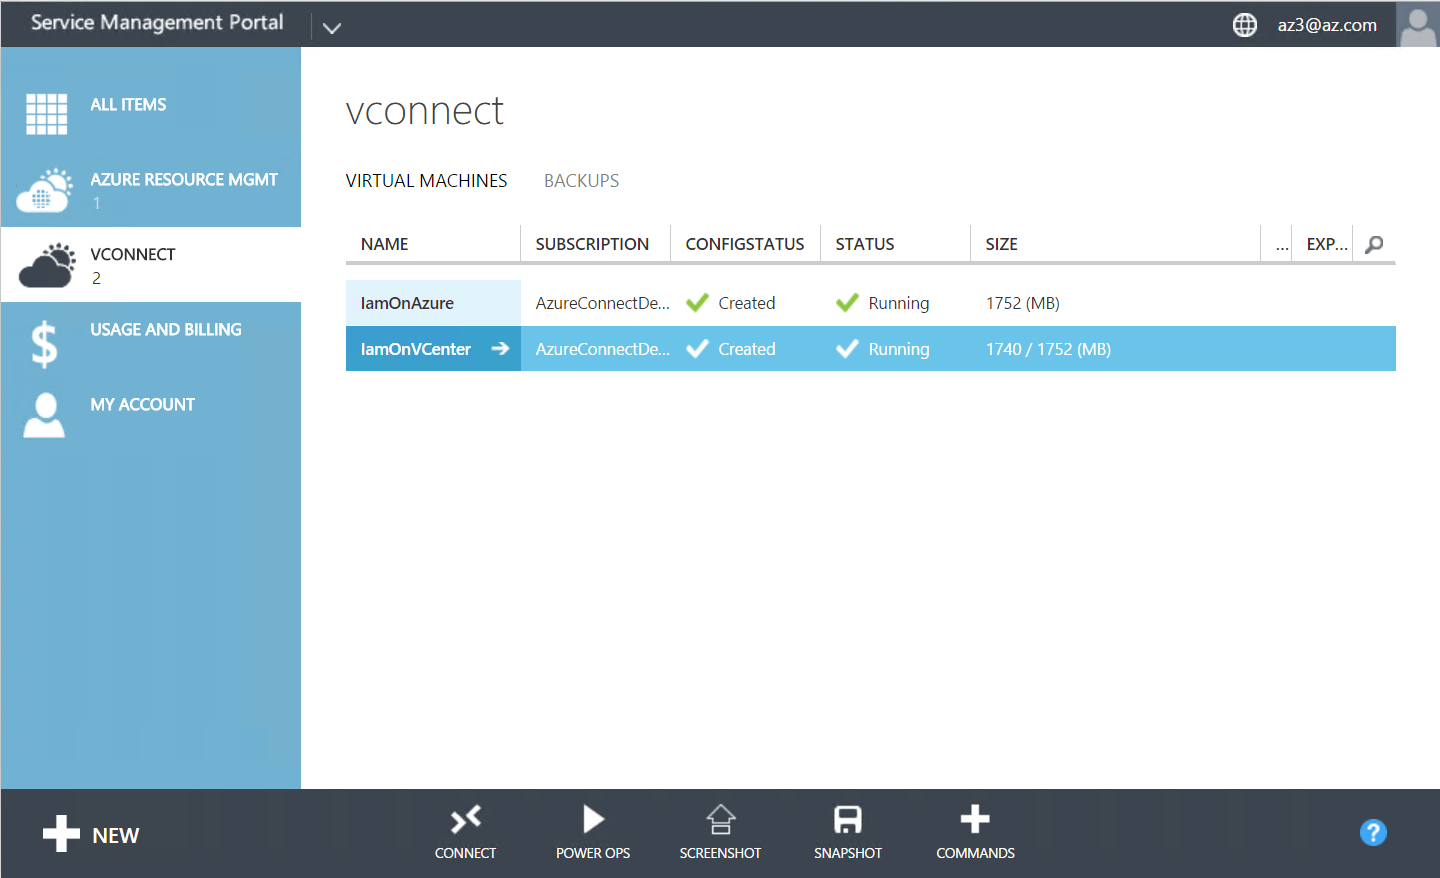 Consistent%20across%20VMWare%20and%20Azure